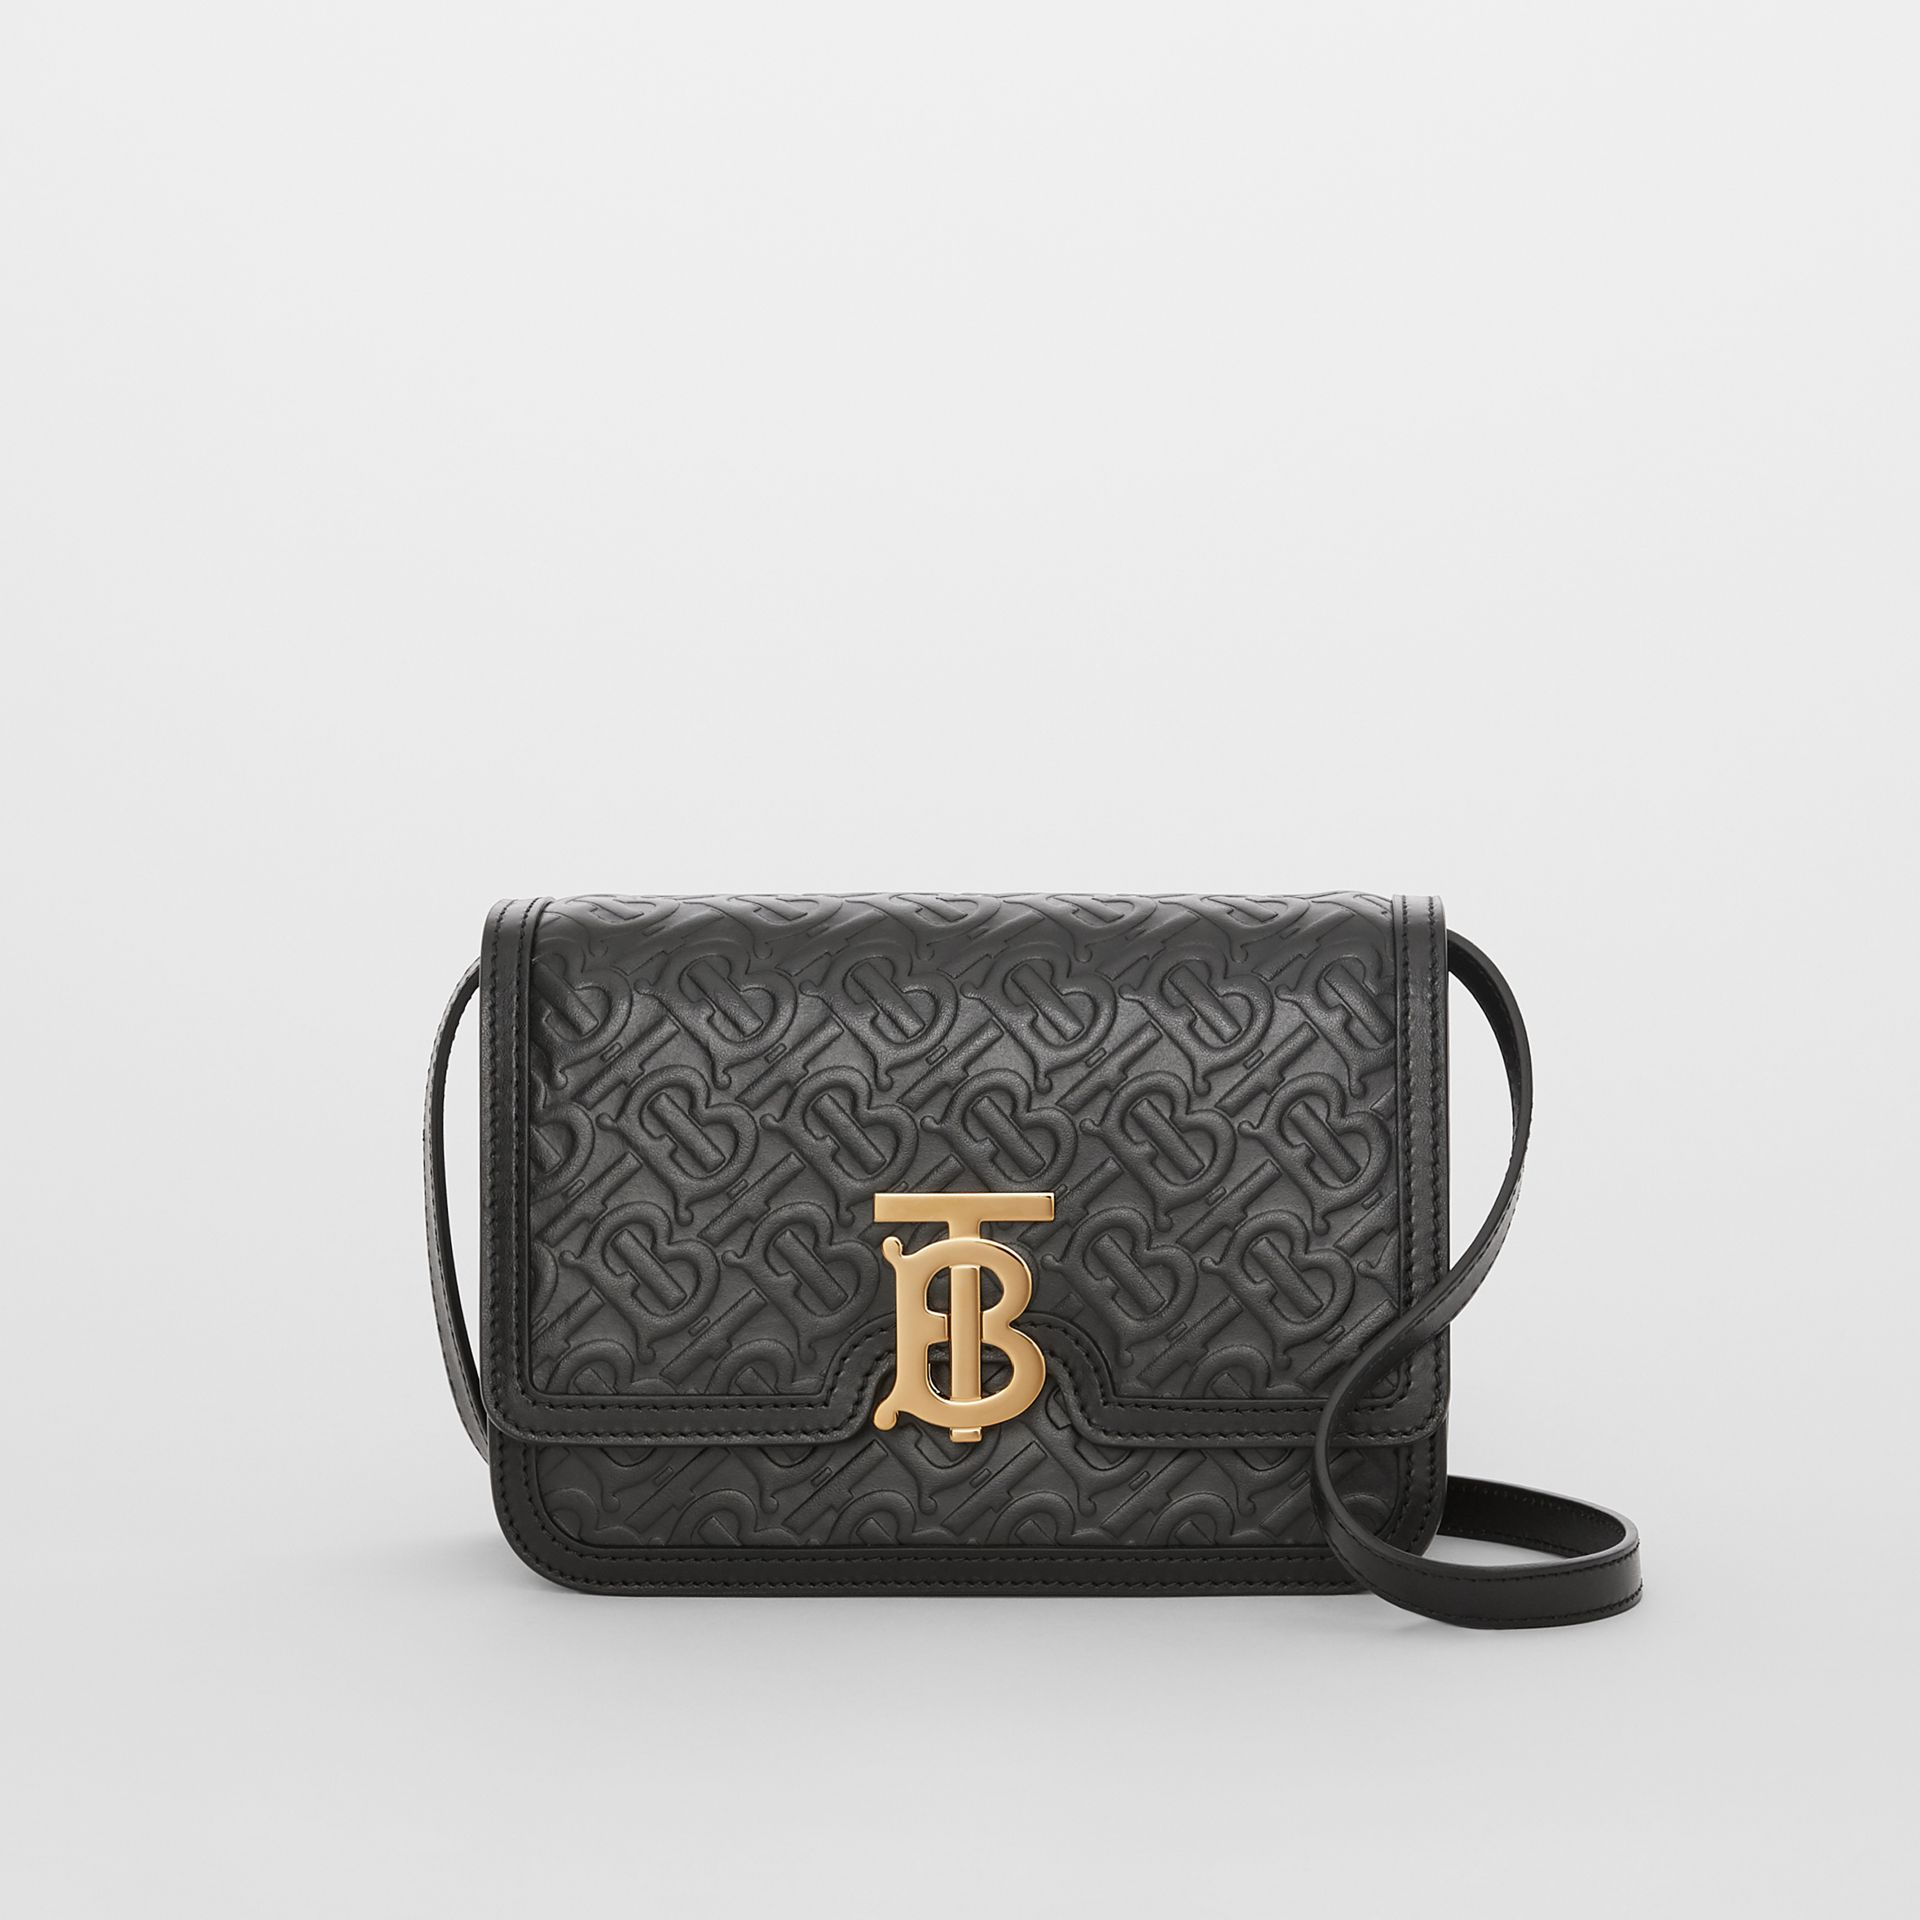 Small Monogram Leather TB Bag in Black - Women | Burberry - gallery image 0